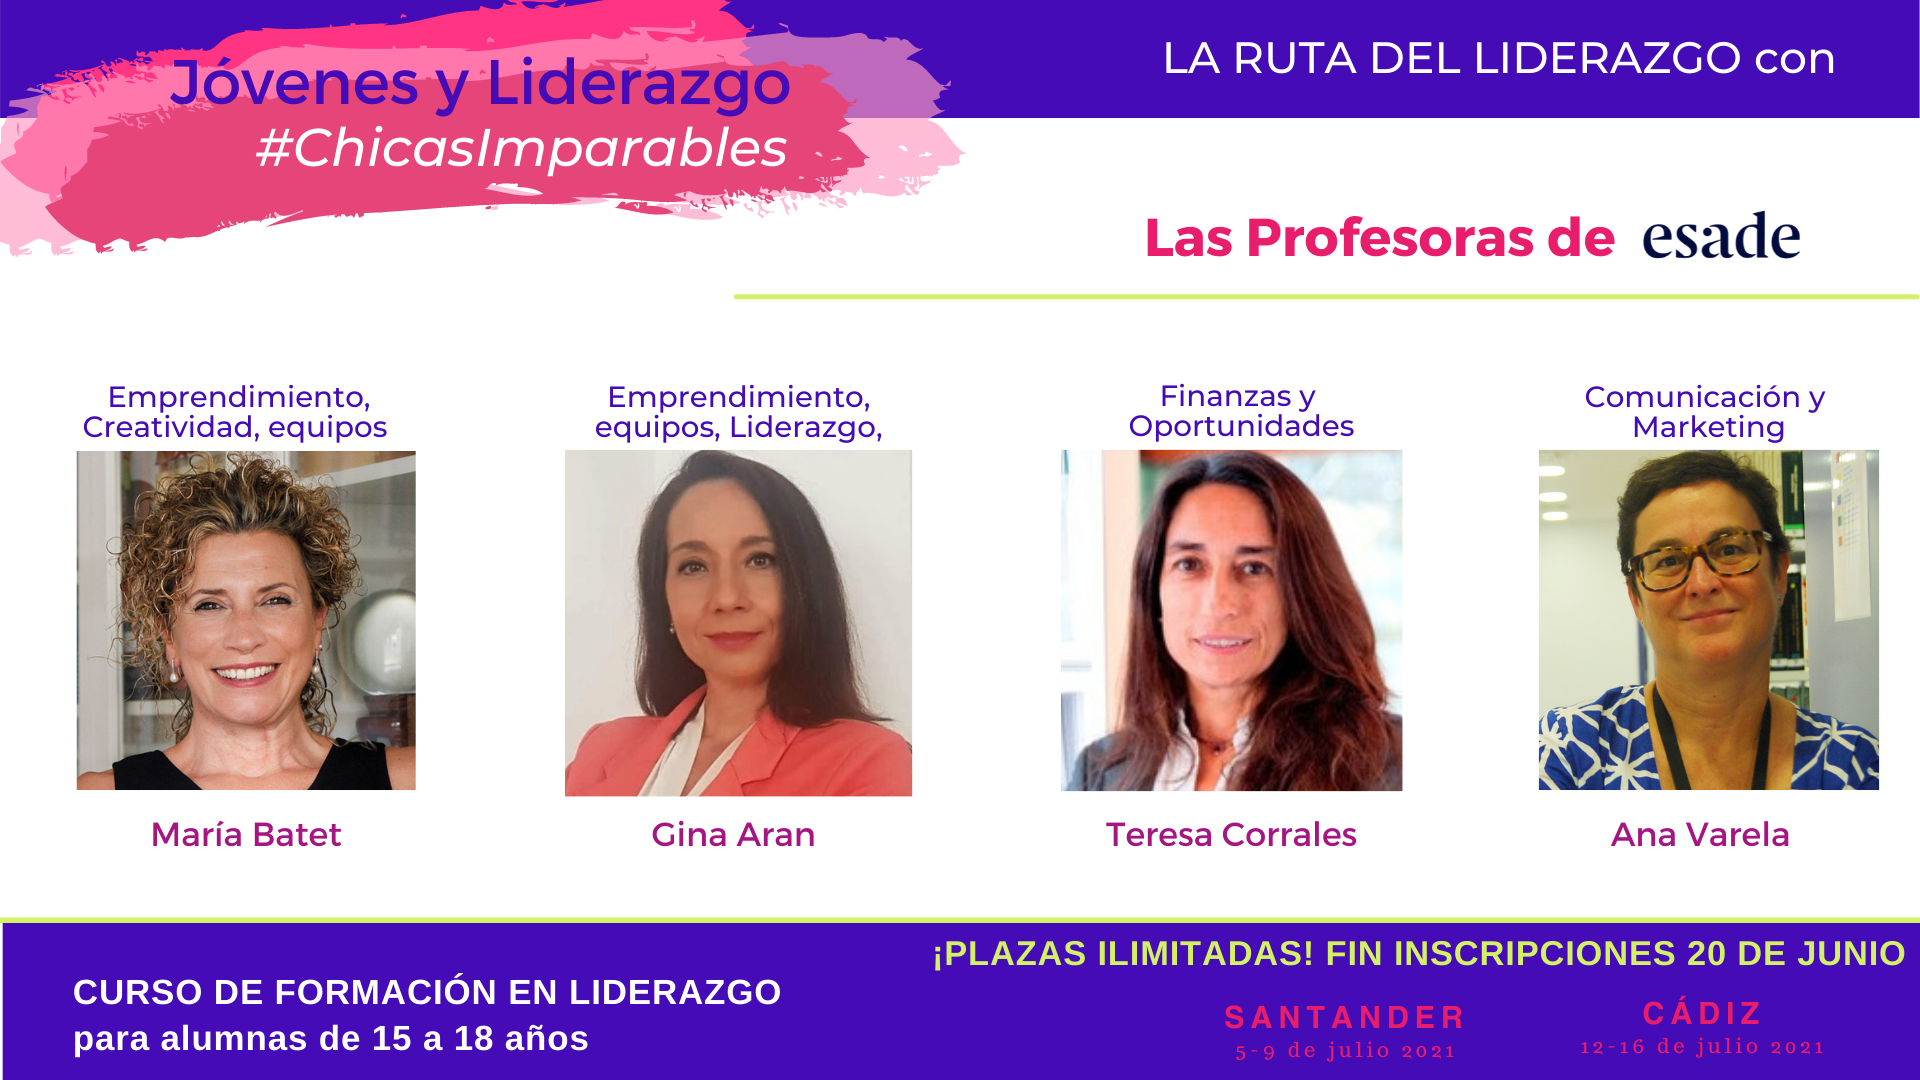 Chicas Imparables 2021